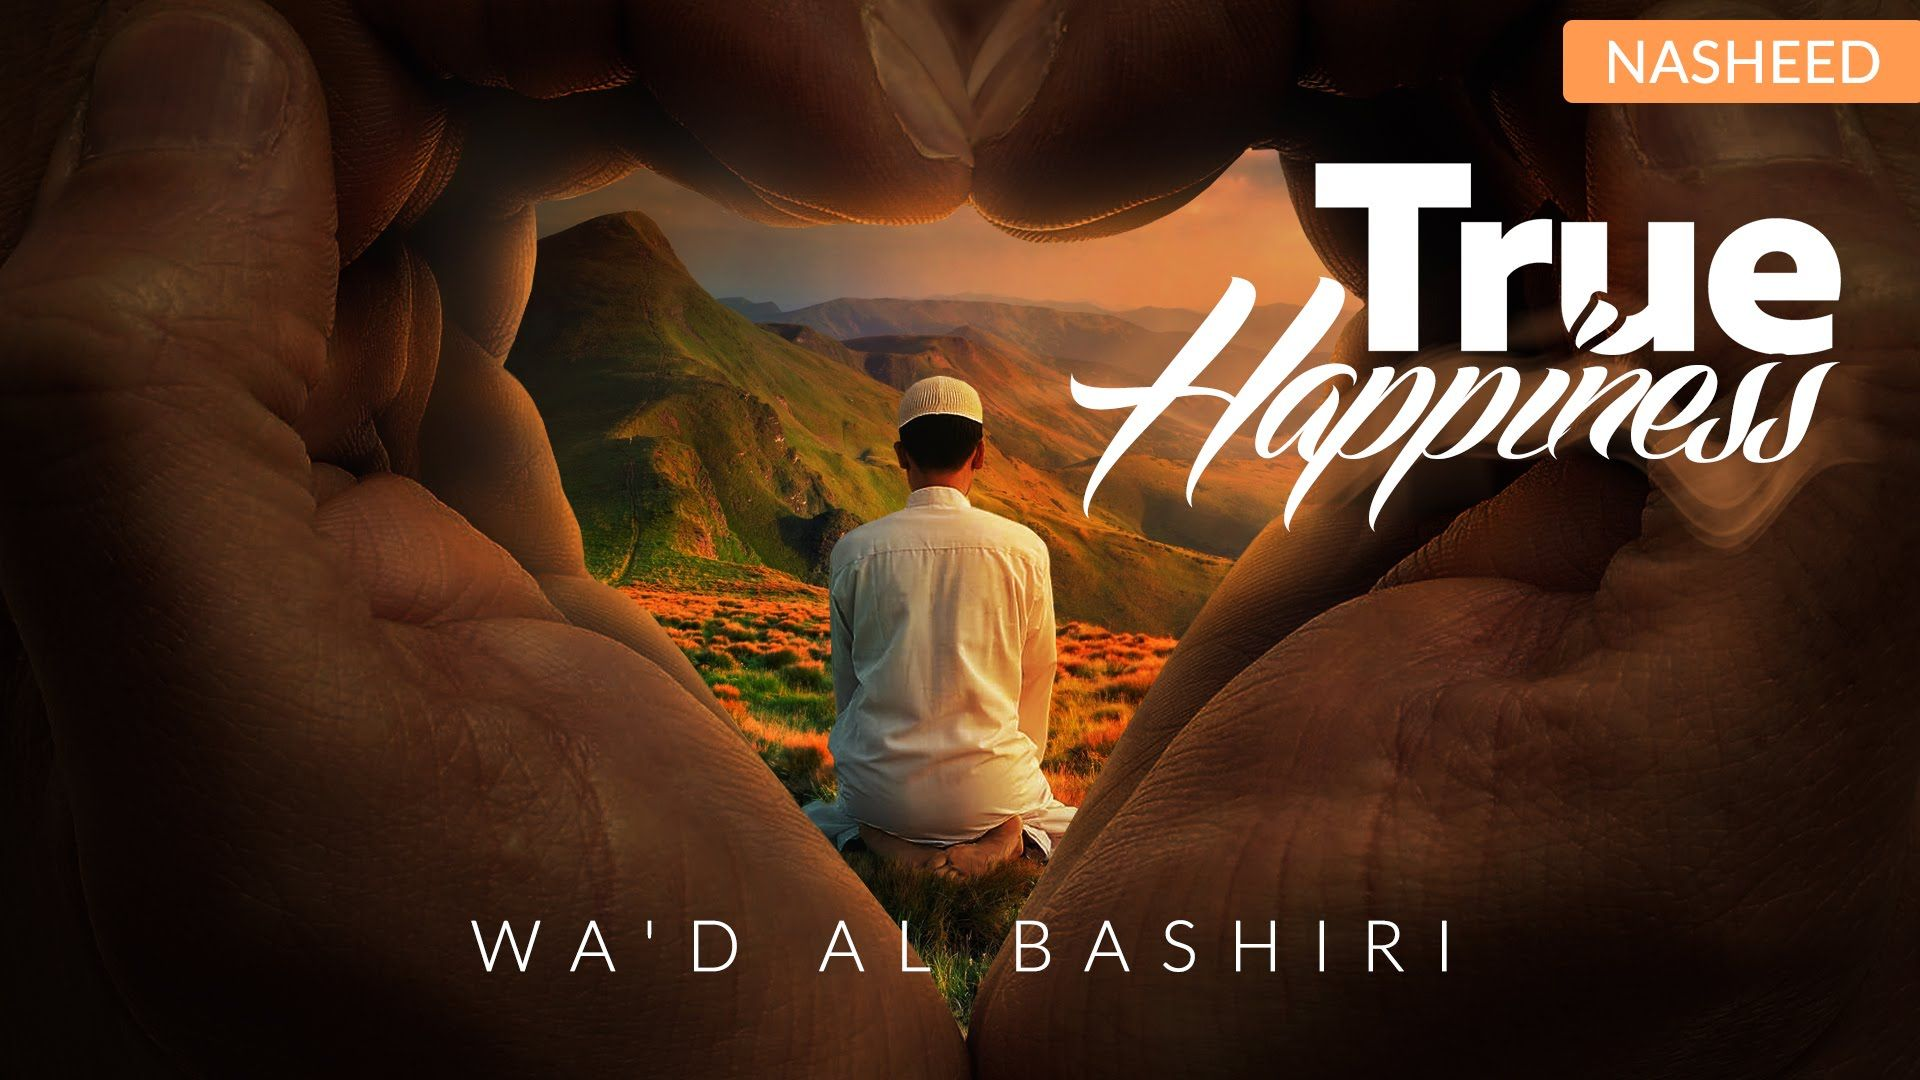 True Happiness ᴴᴰ - Beautiful Nasheed [Wa'd Al Bashiri] Support the Dawah - Click here to donate: https://www.gofundme.com/The-Daily-Reminder